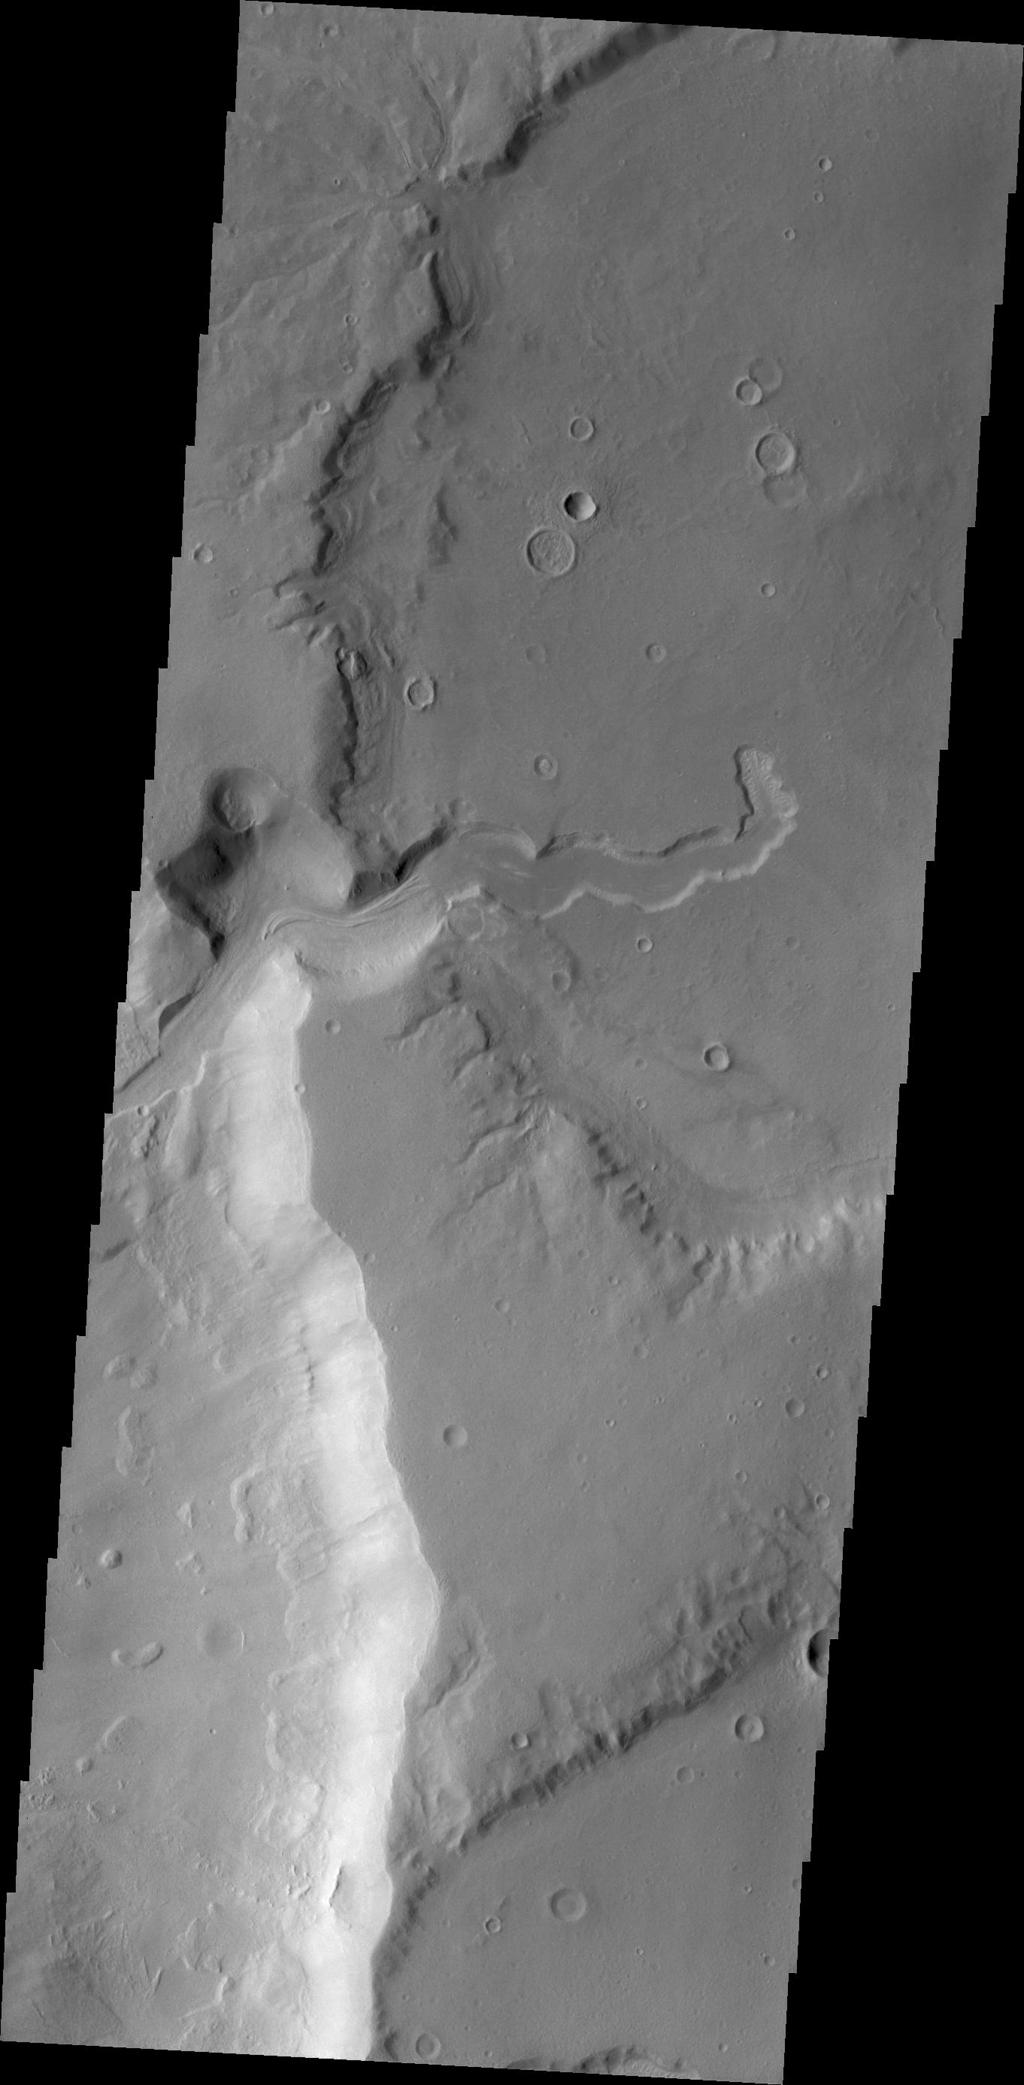 This image captured by NASA's 2001 Mars Odyssey shows a small channel emptying into a deeper crater to the west.